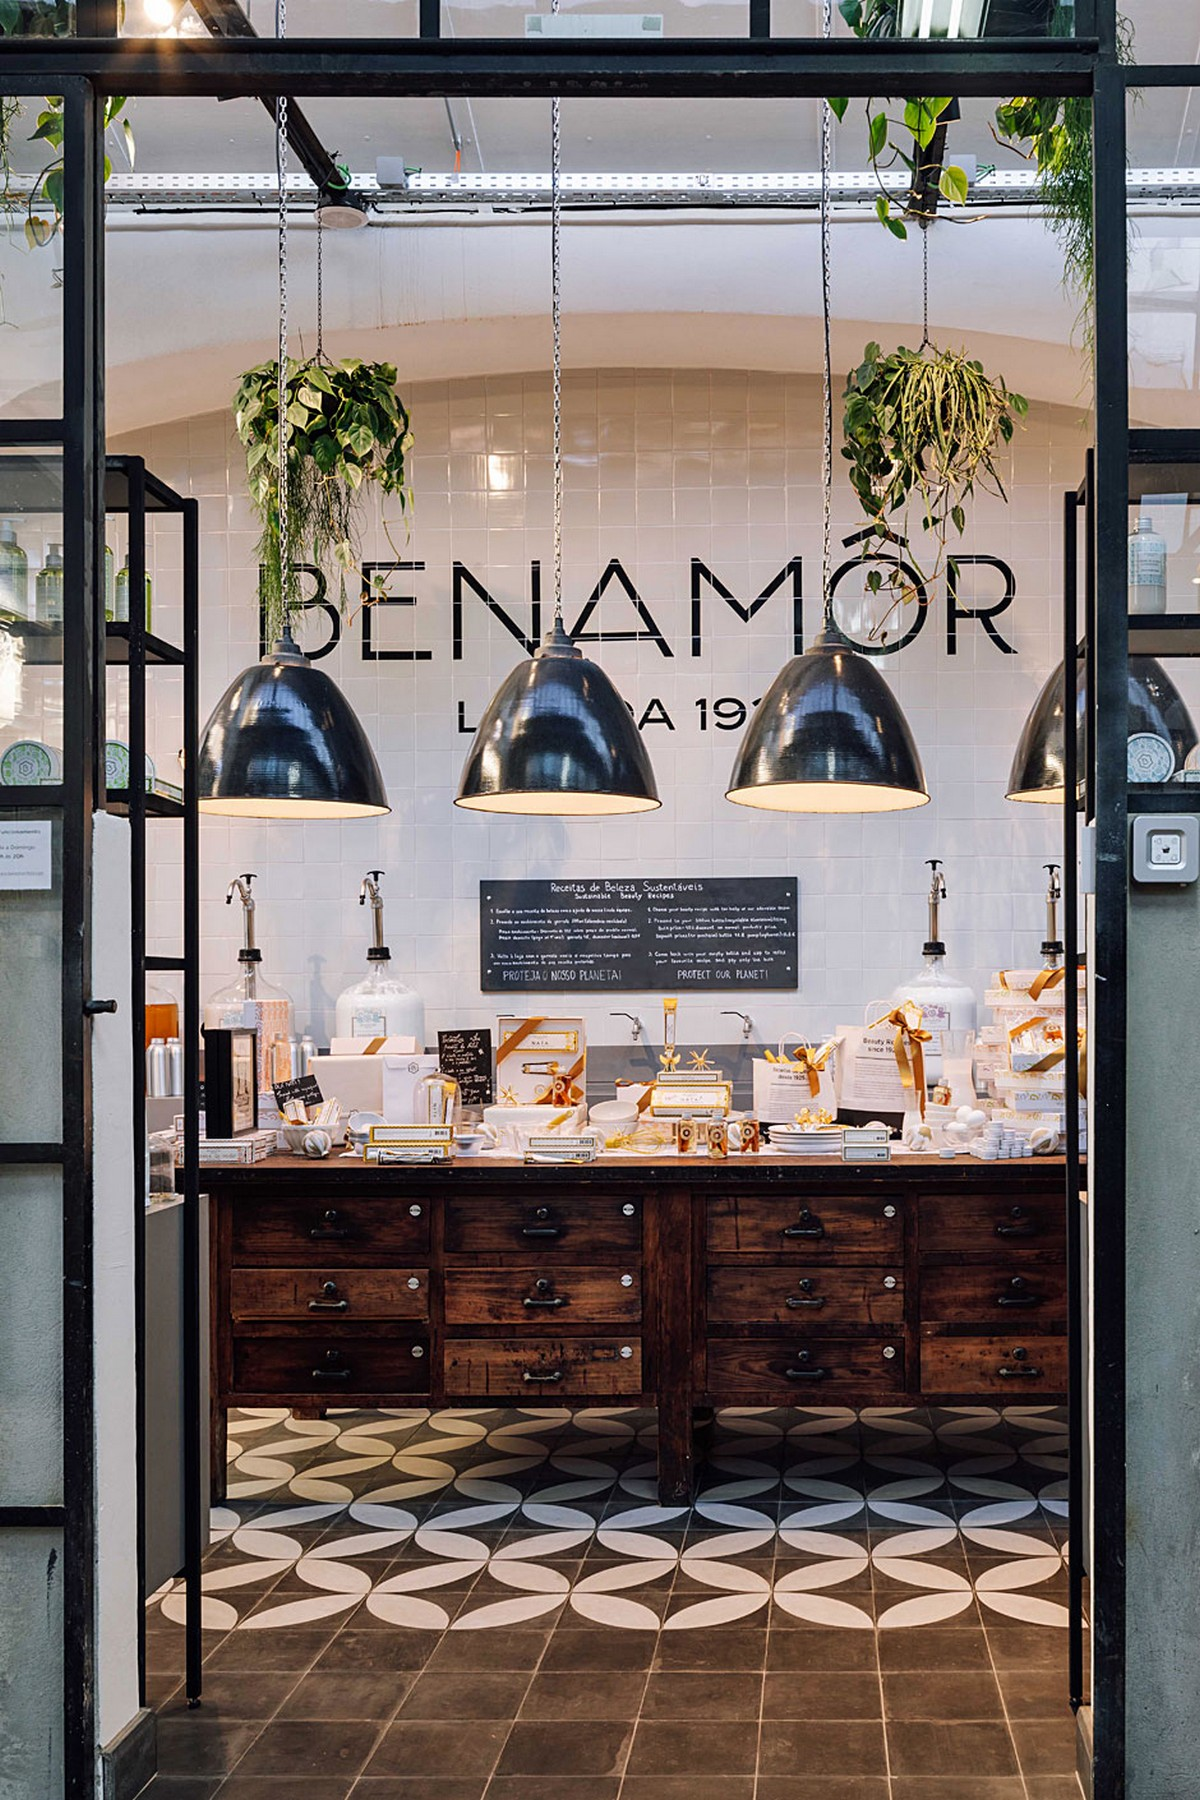 Benamôr The Iconic Portuguese Brand Has a New Store in Lisbon